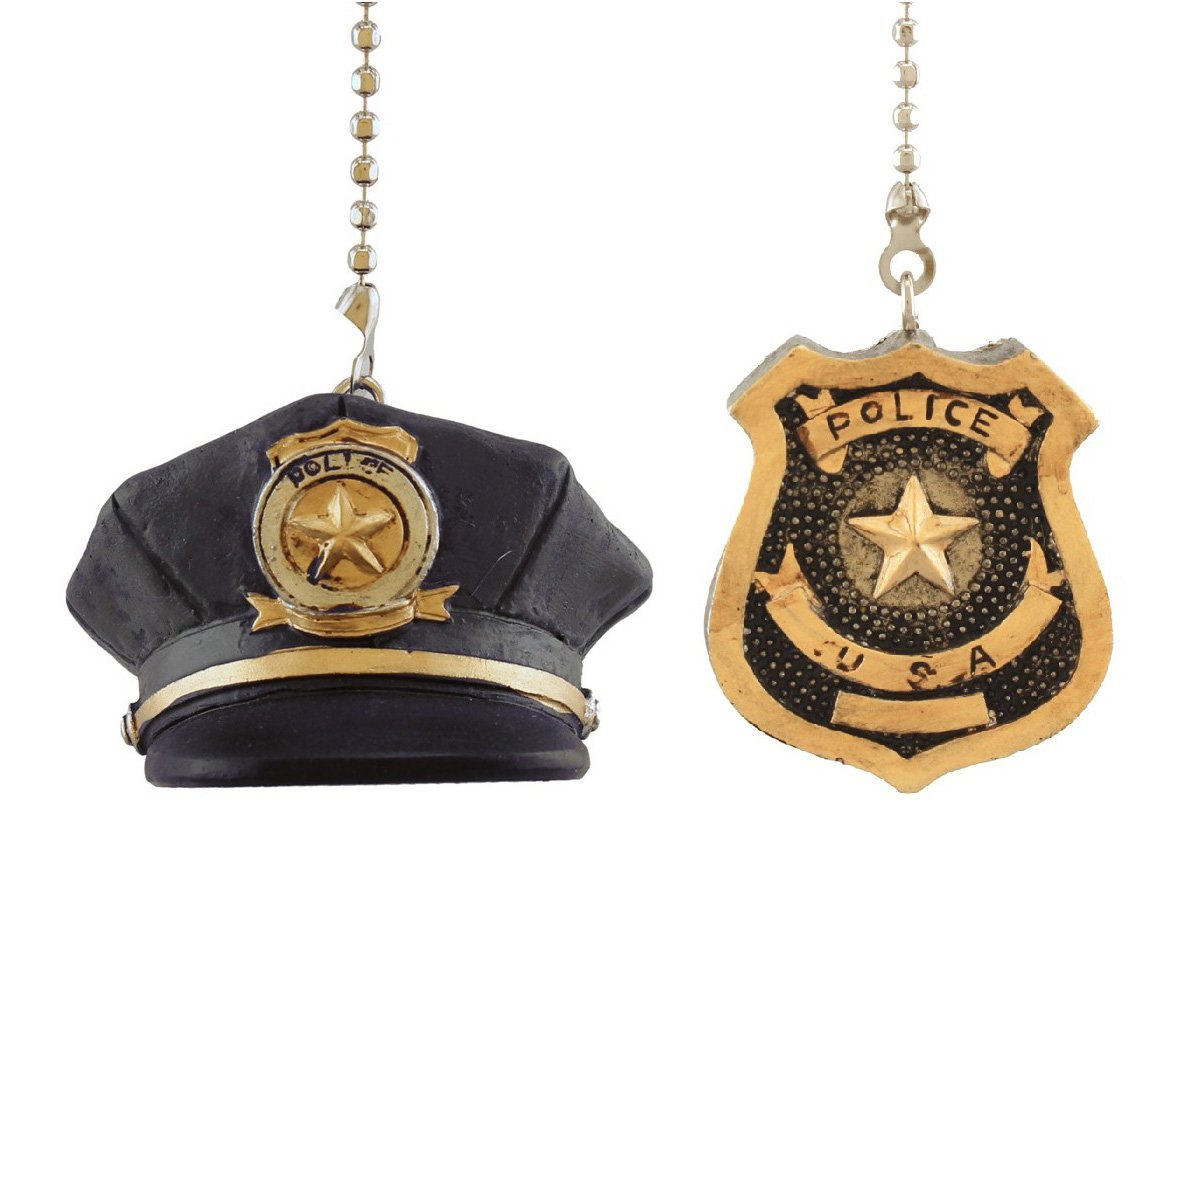 Police Hat and Badge 2 Piece Fan Pull Set